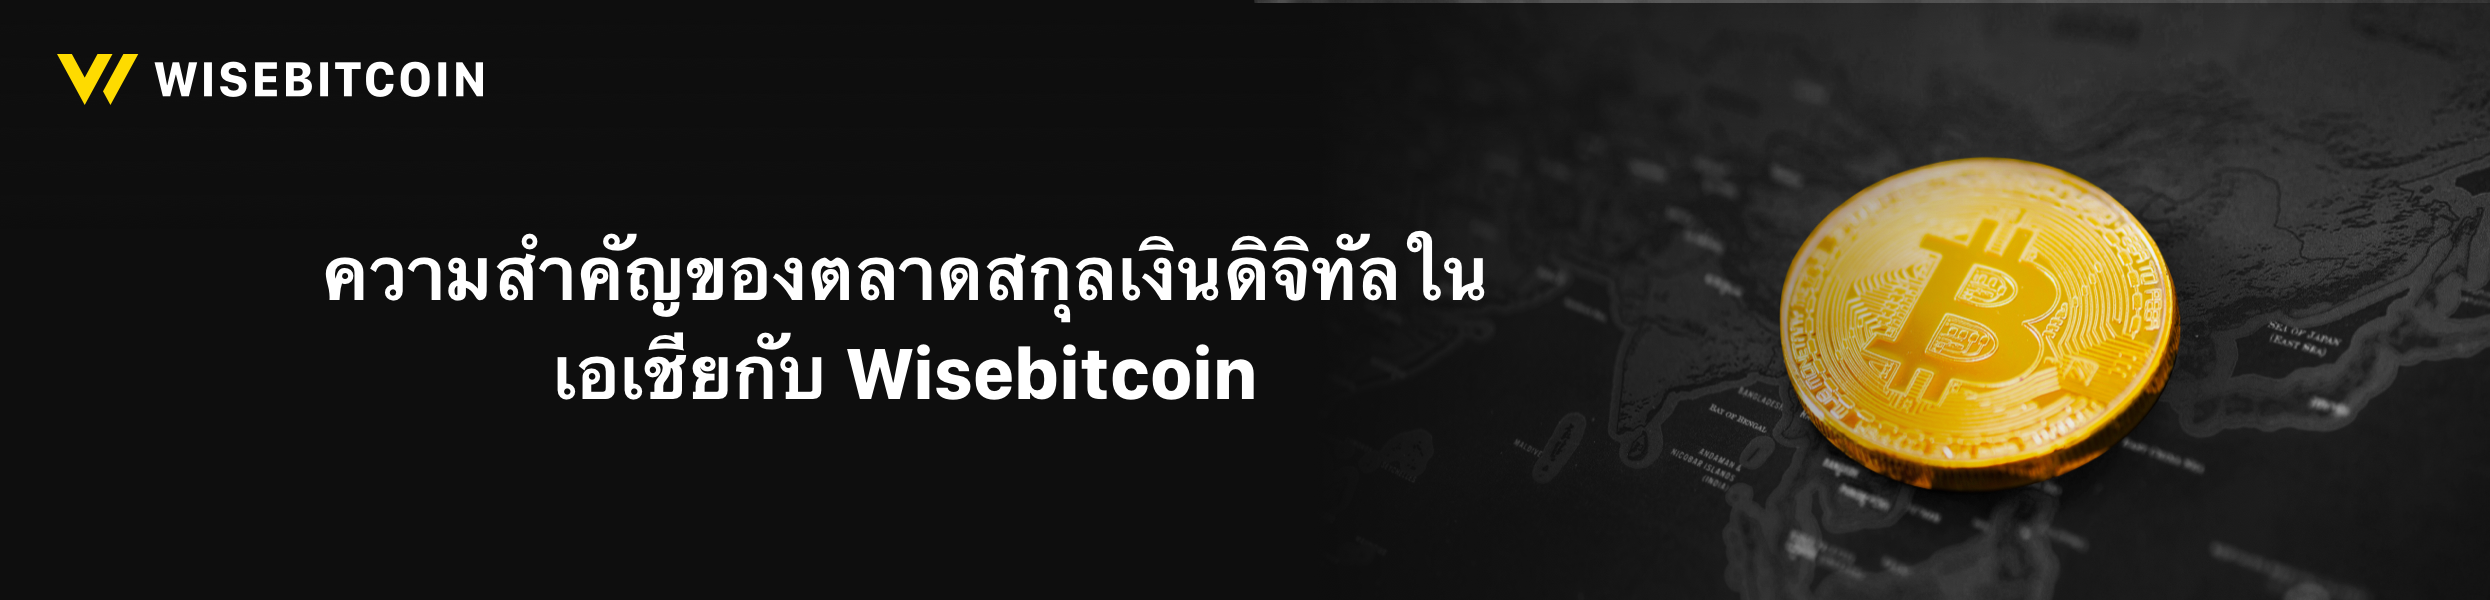 importance of the asian crypto market banner thai version